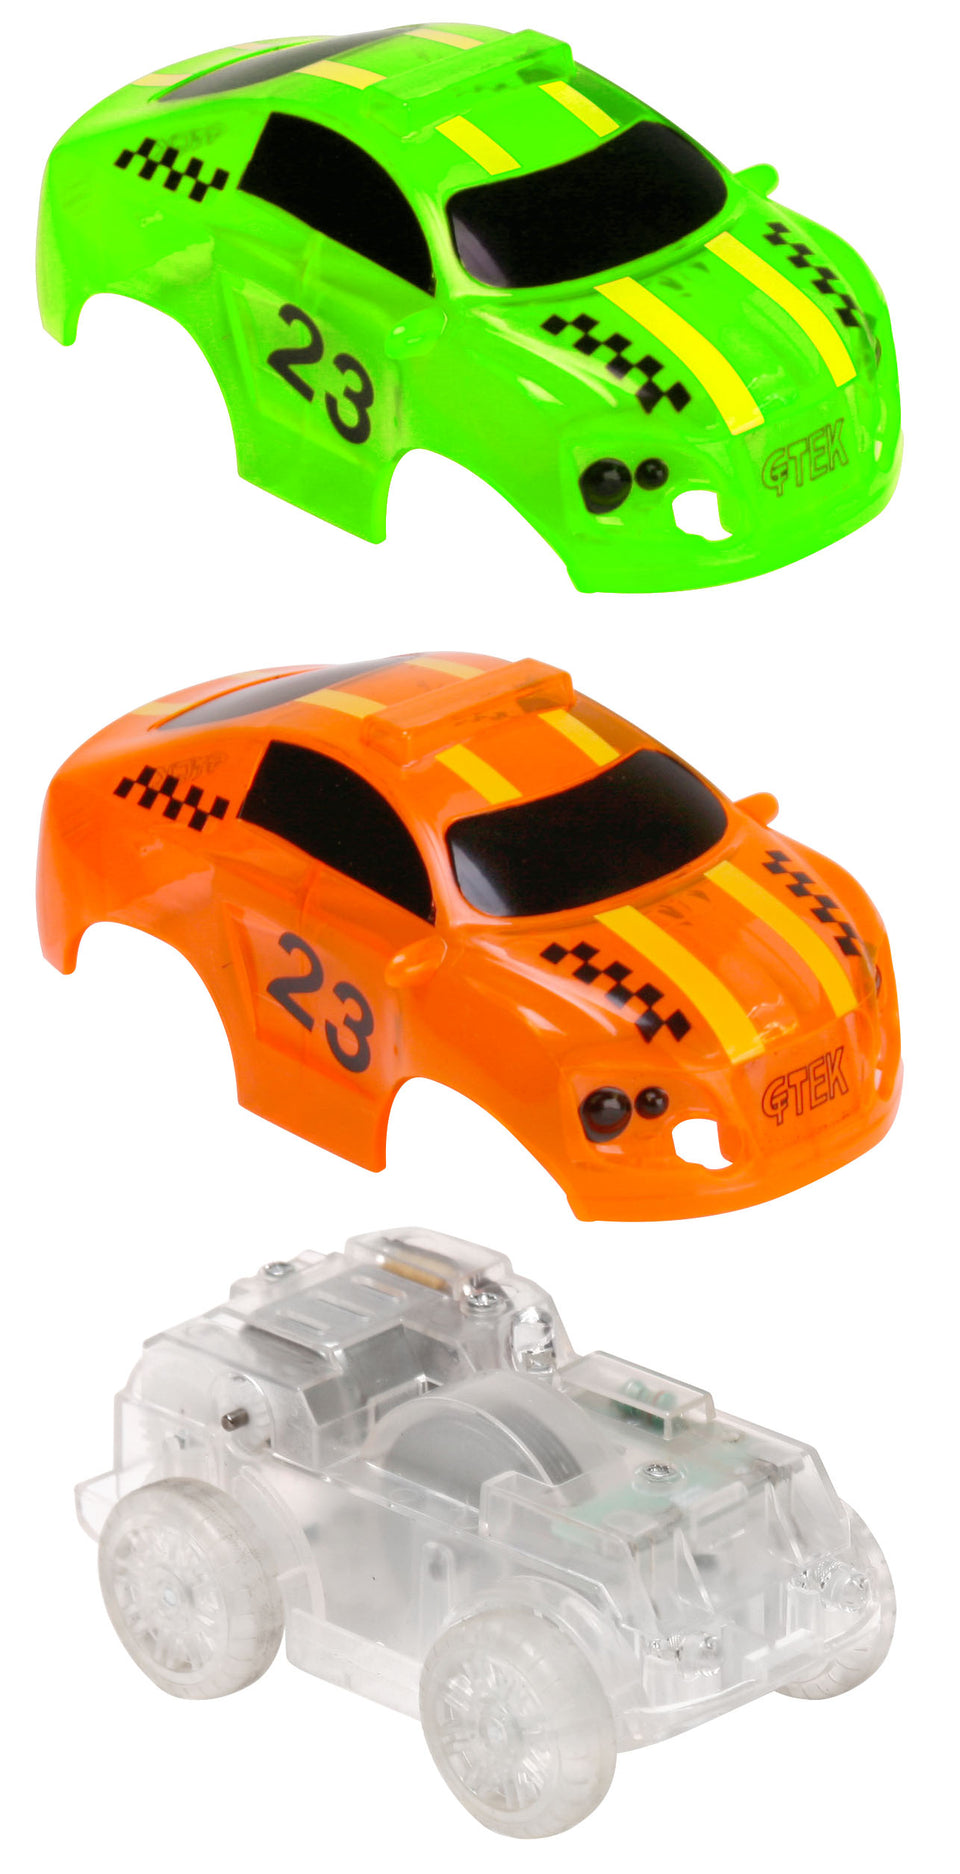 GreenTek Light Up Friction Vehicles - Race